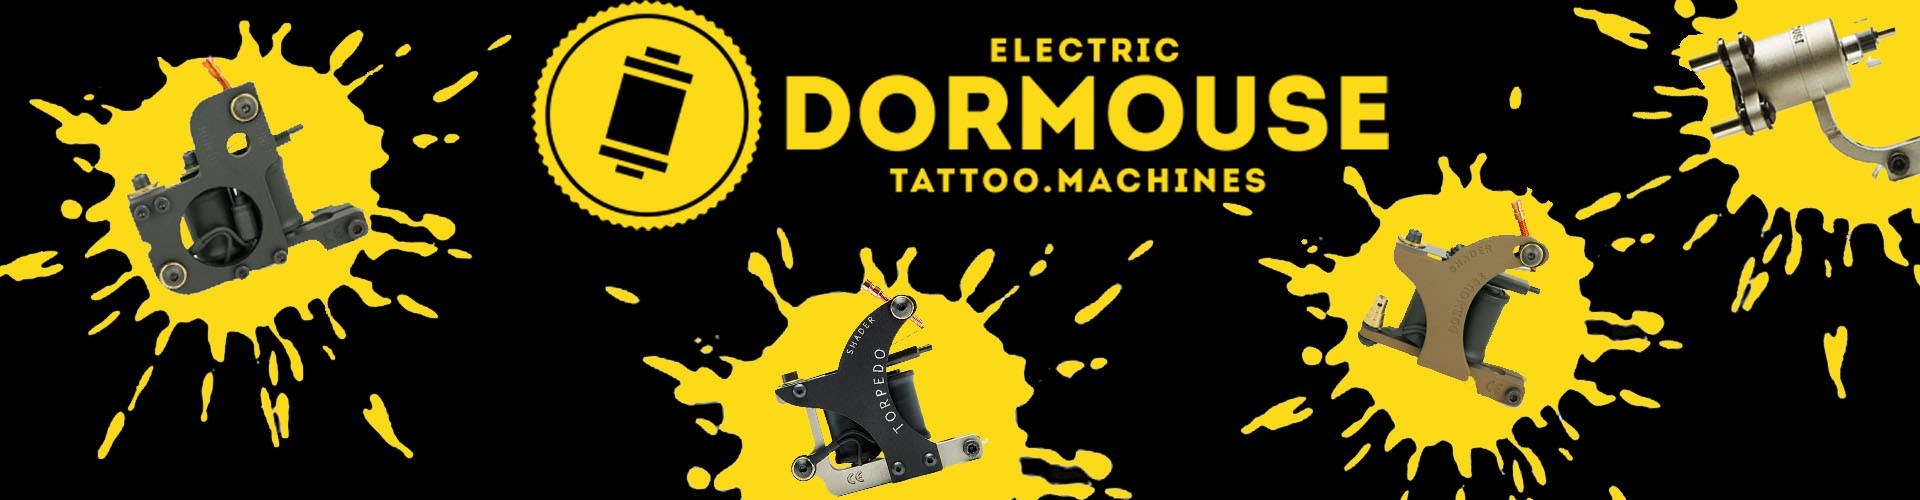 Electric_Dormouse_Tattoo_Machine